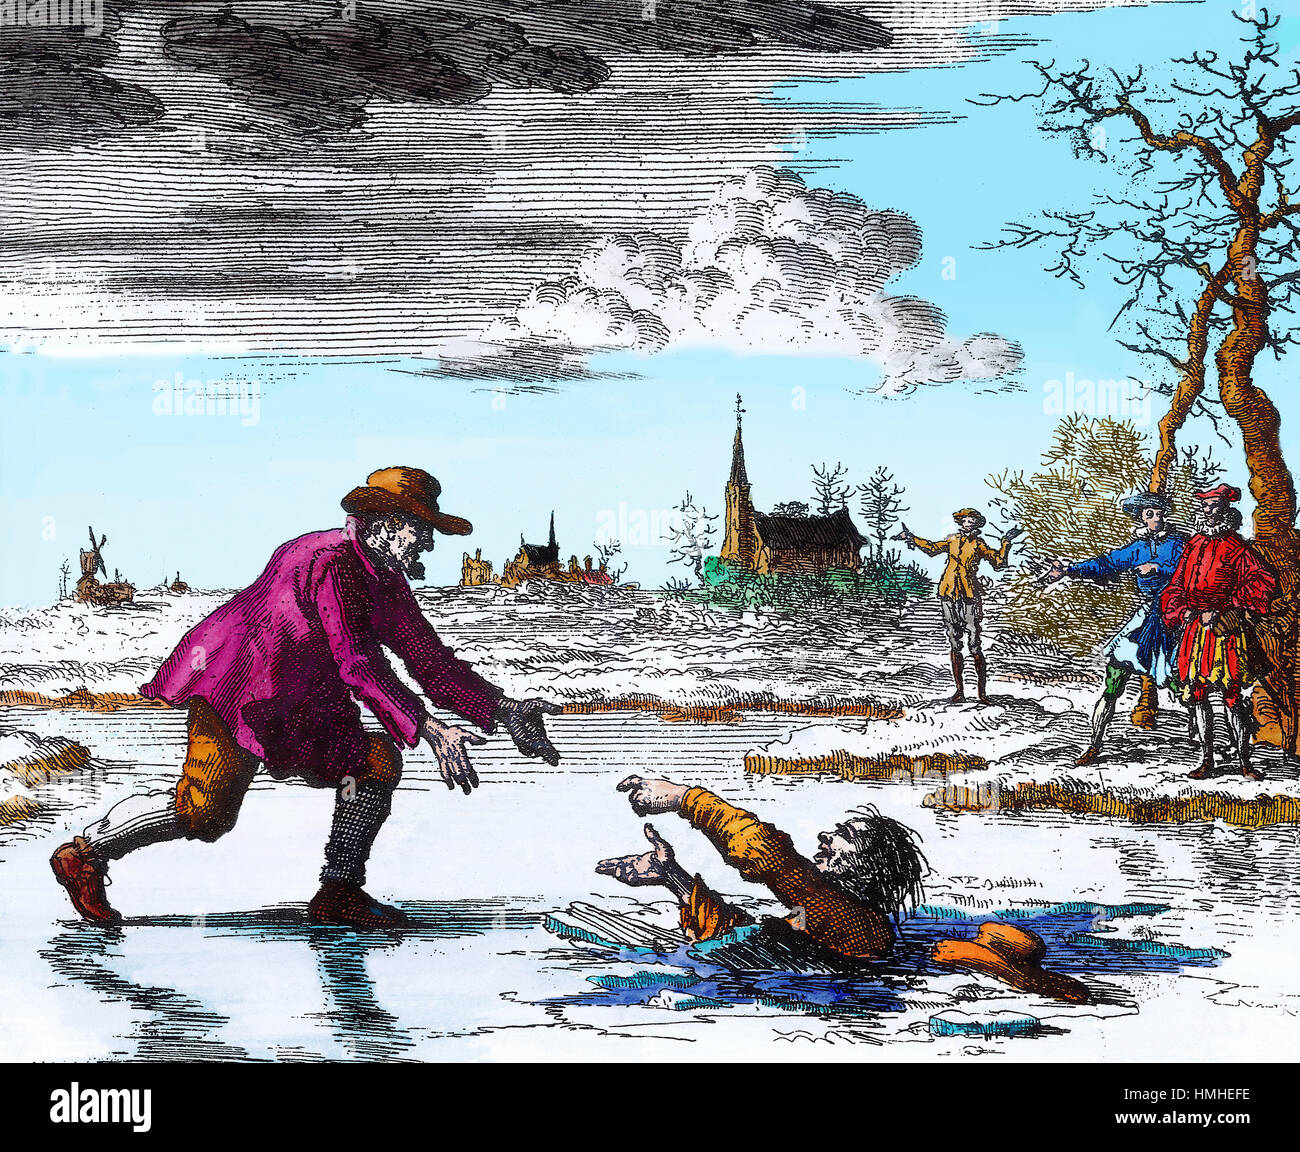 Hand coloured line drawing of the Anabaptist Dirk Willems rescuing his would-be captor from death. - Stock Image